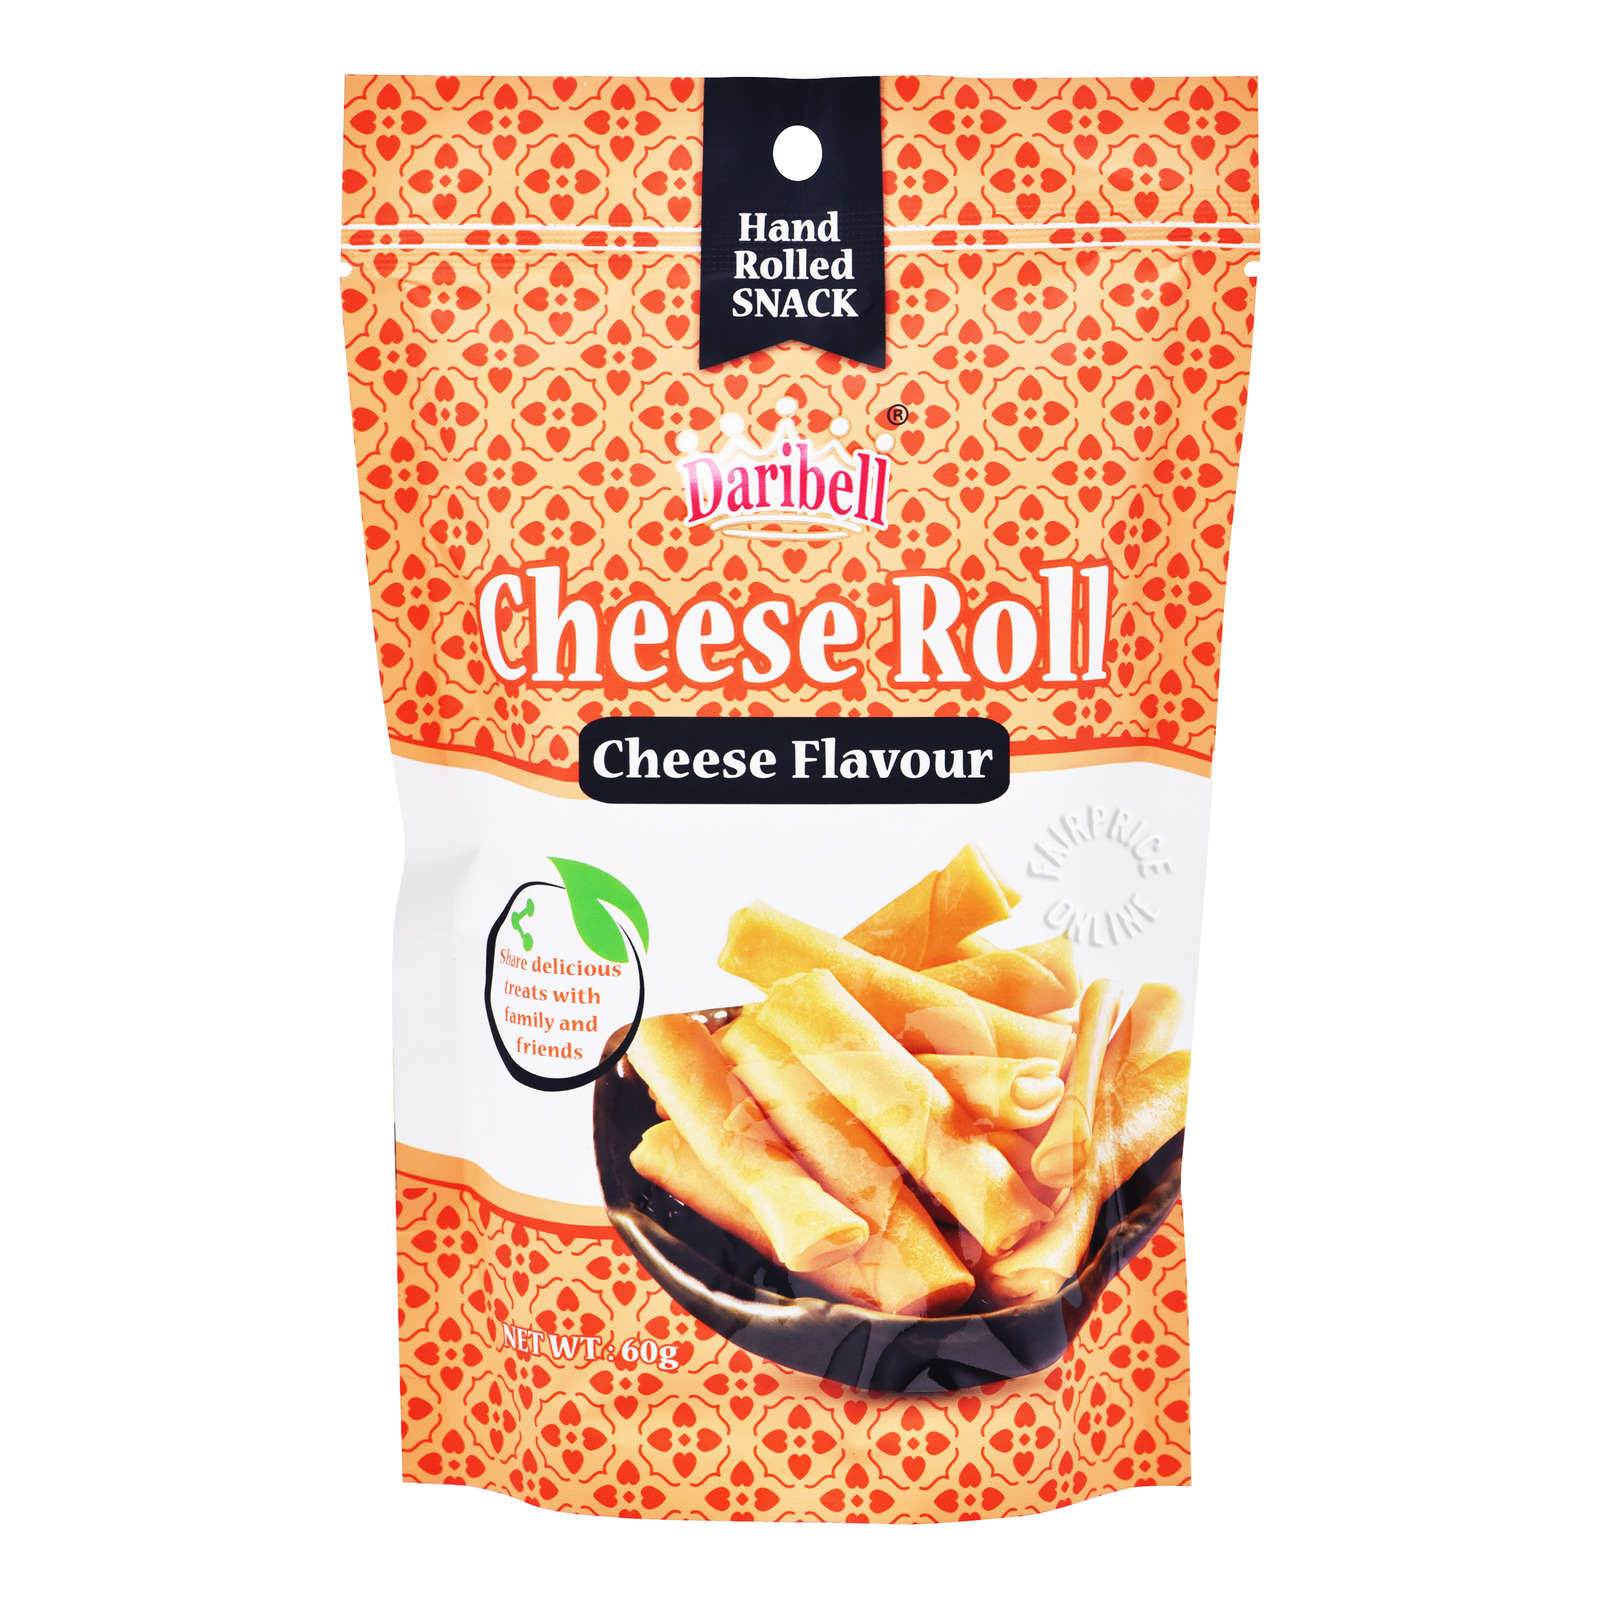 Daribell Hand Rolled Snack - Cheese Roll